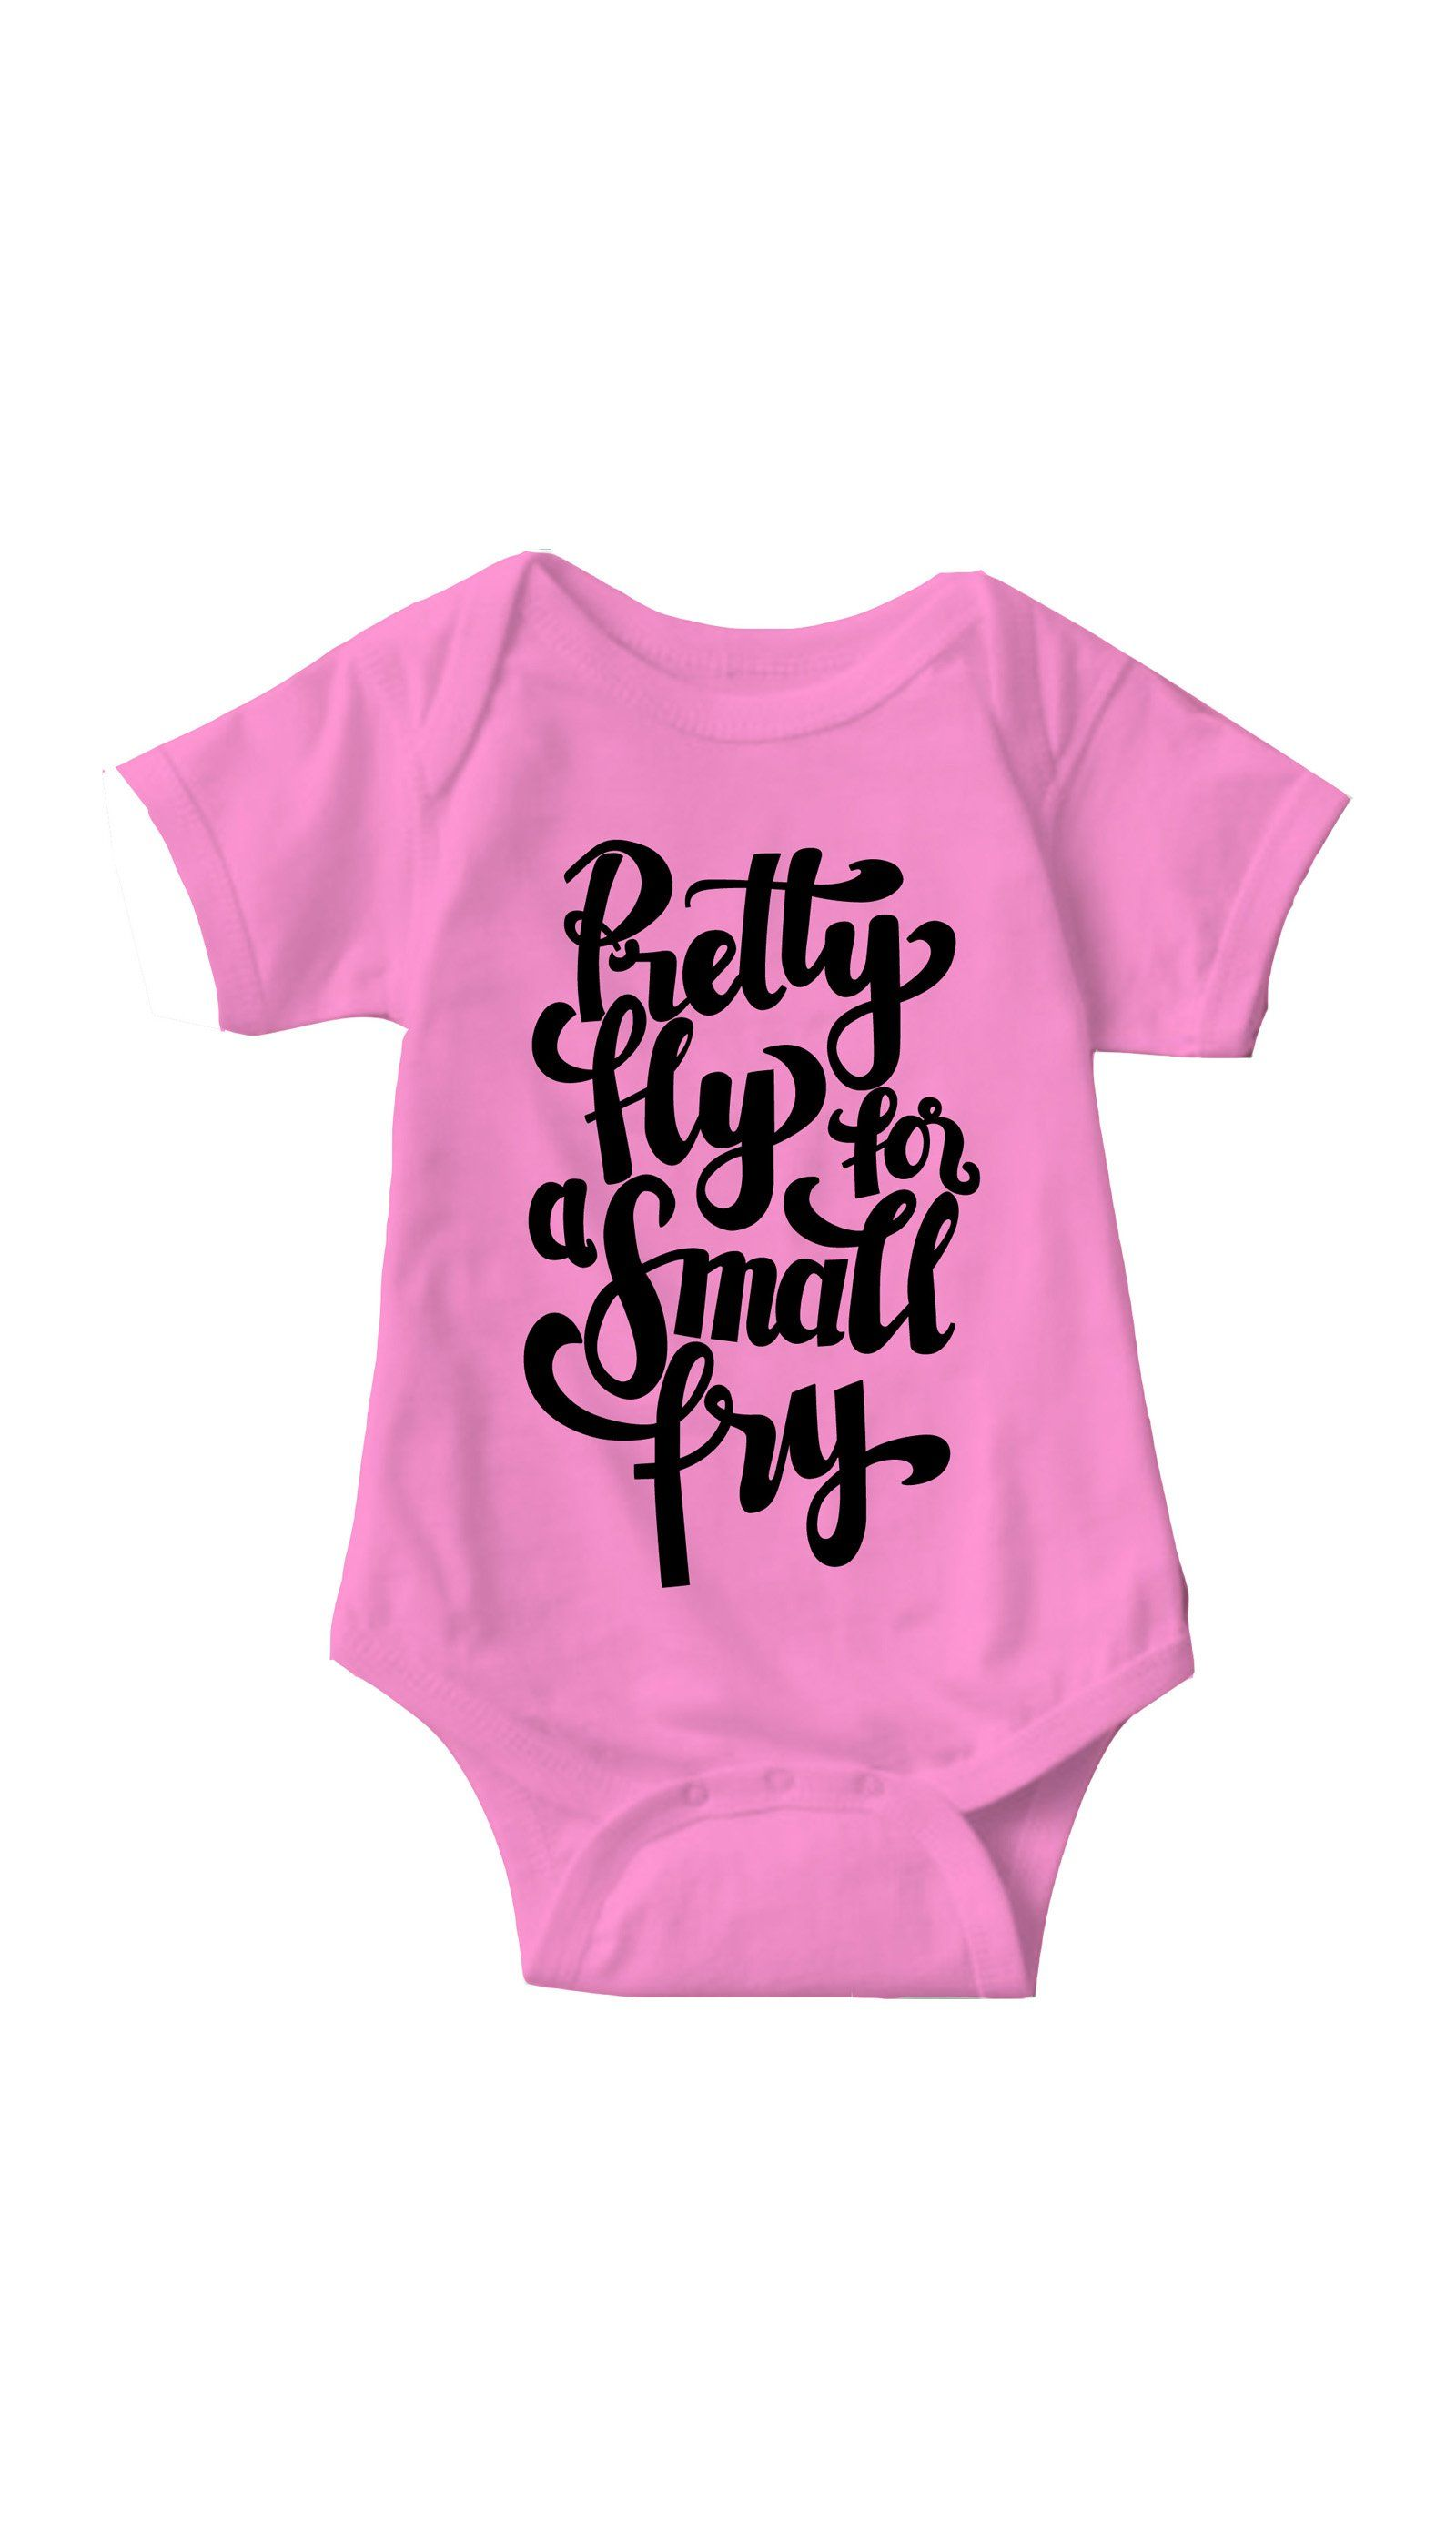 7dce8ff4c 26 Sarcastic Onesies The Funny Baby Must Wear